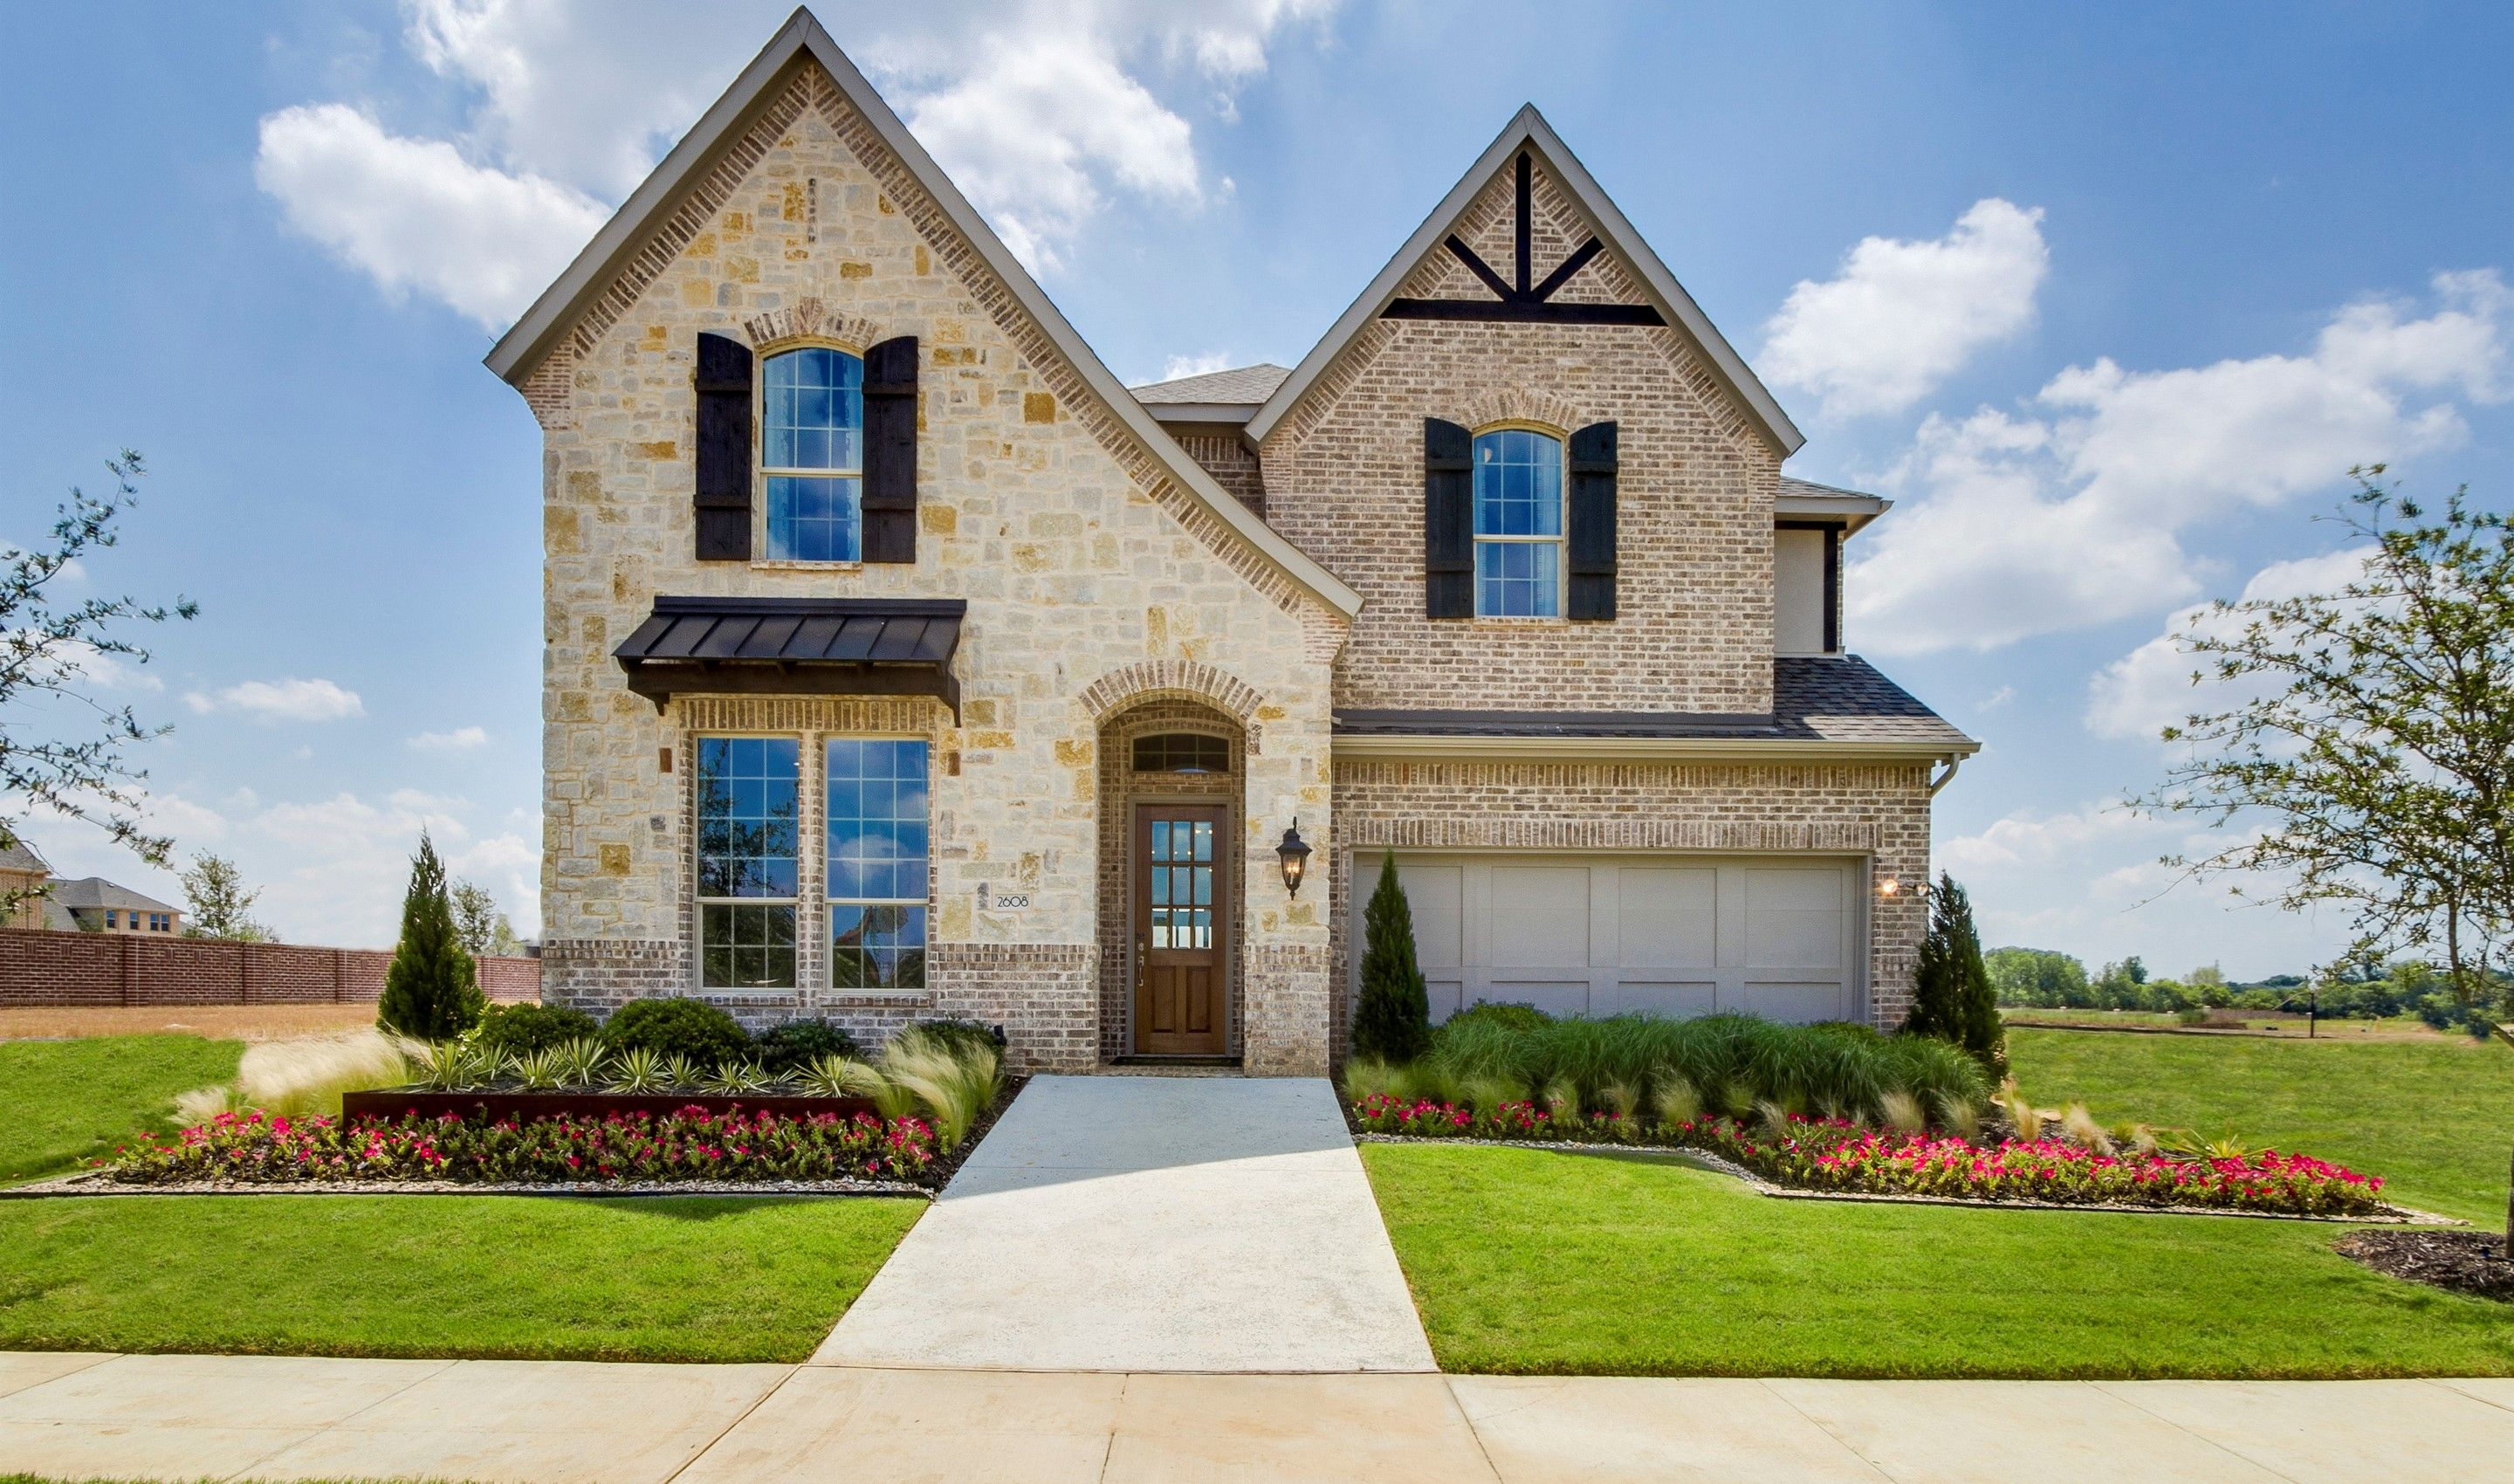 This is the Brand-new Image Of Patio Homes for Sale Grapevine Tx